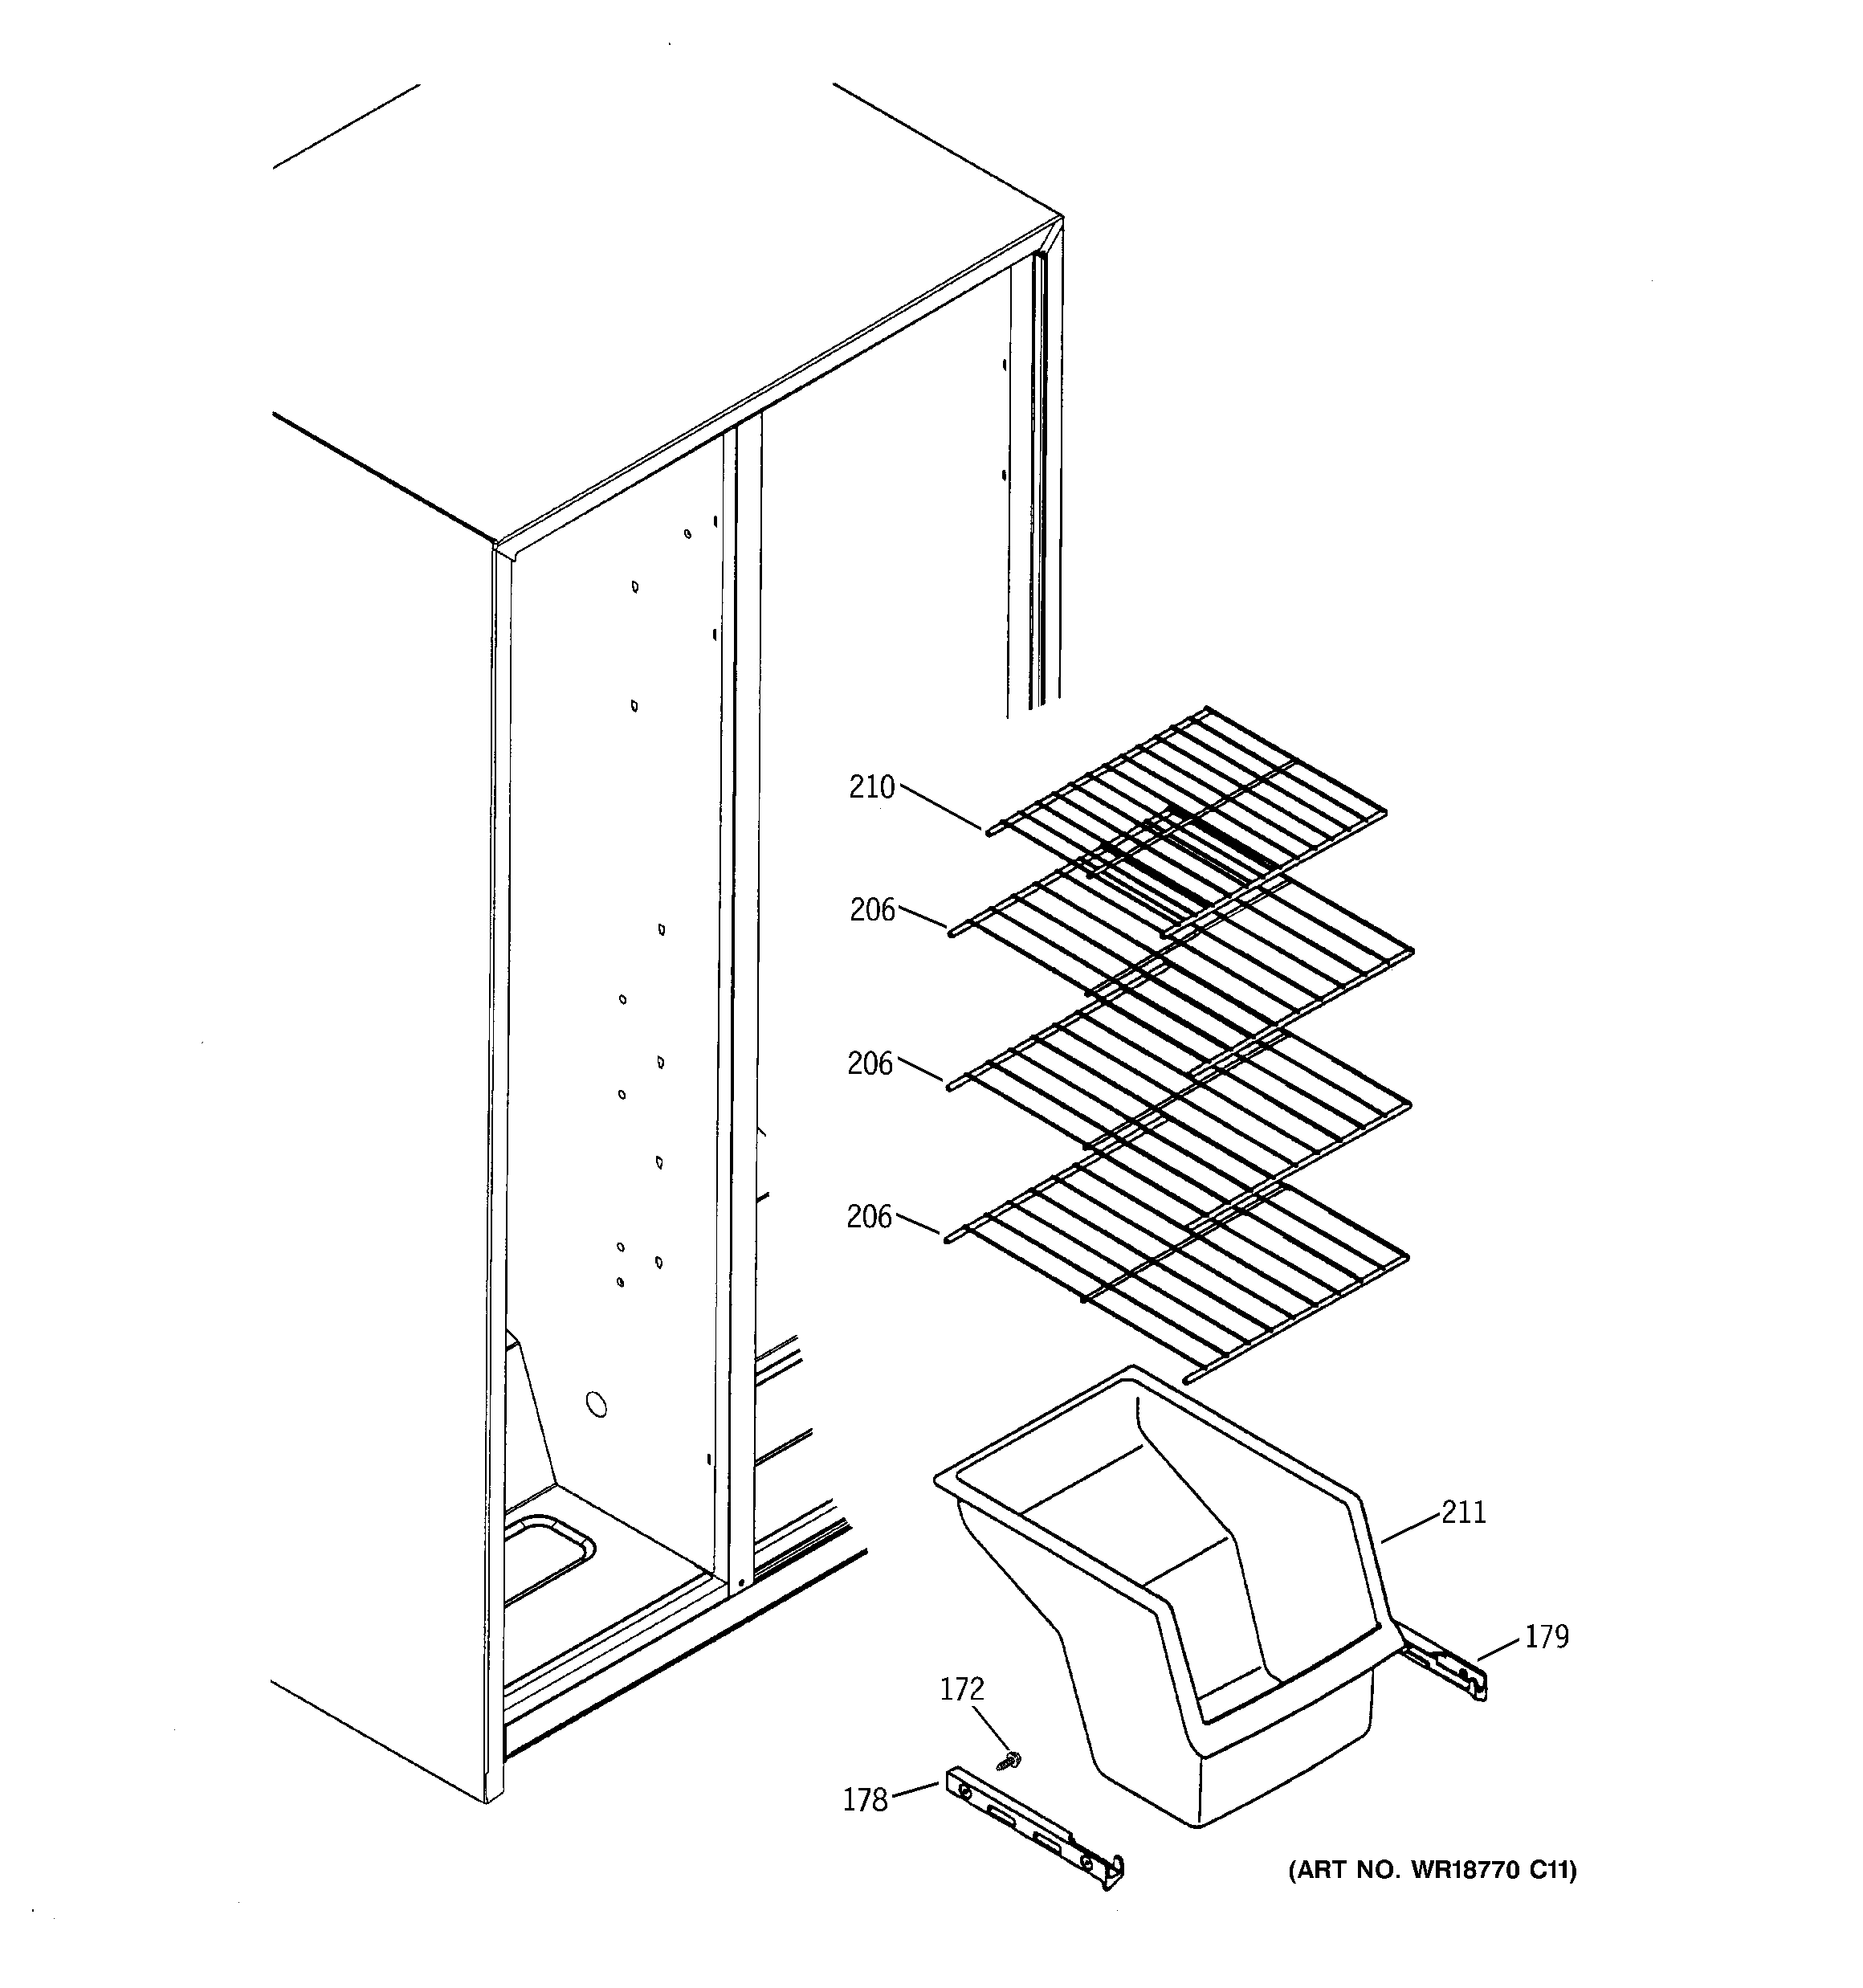 FREEZER SHELVES Diagram & Parts List for Model GSS22JETABB